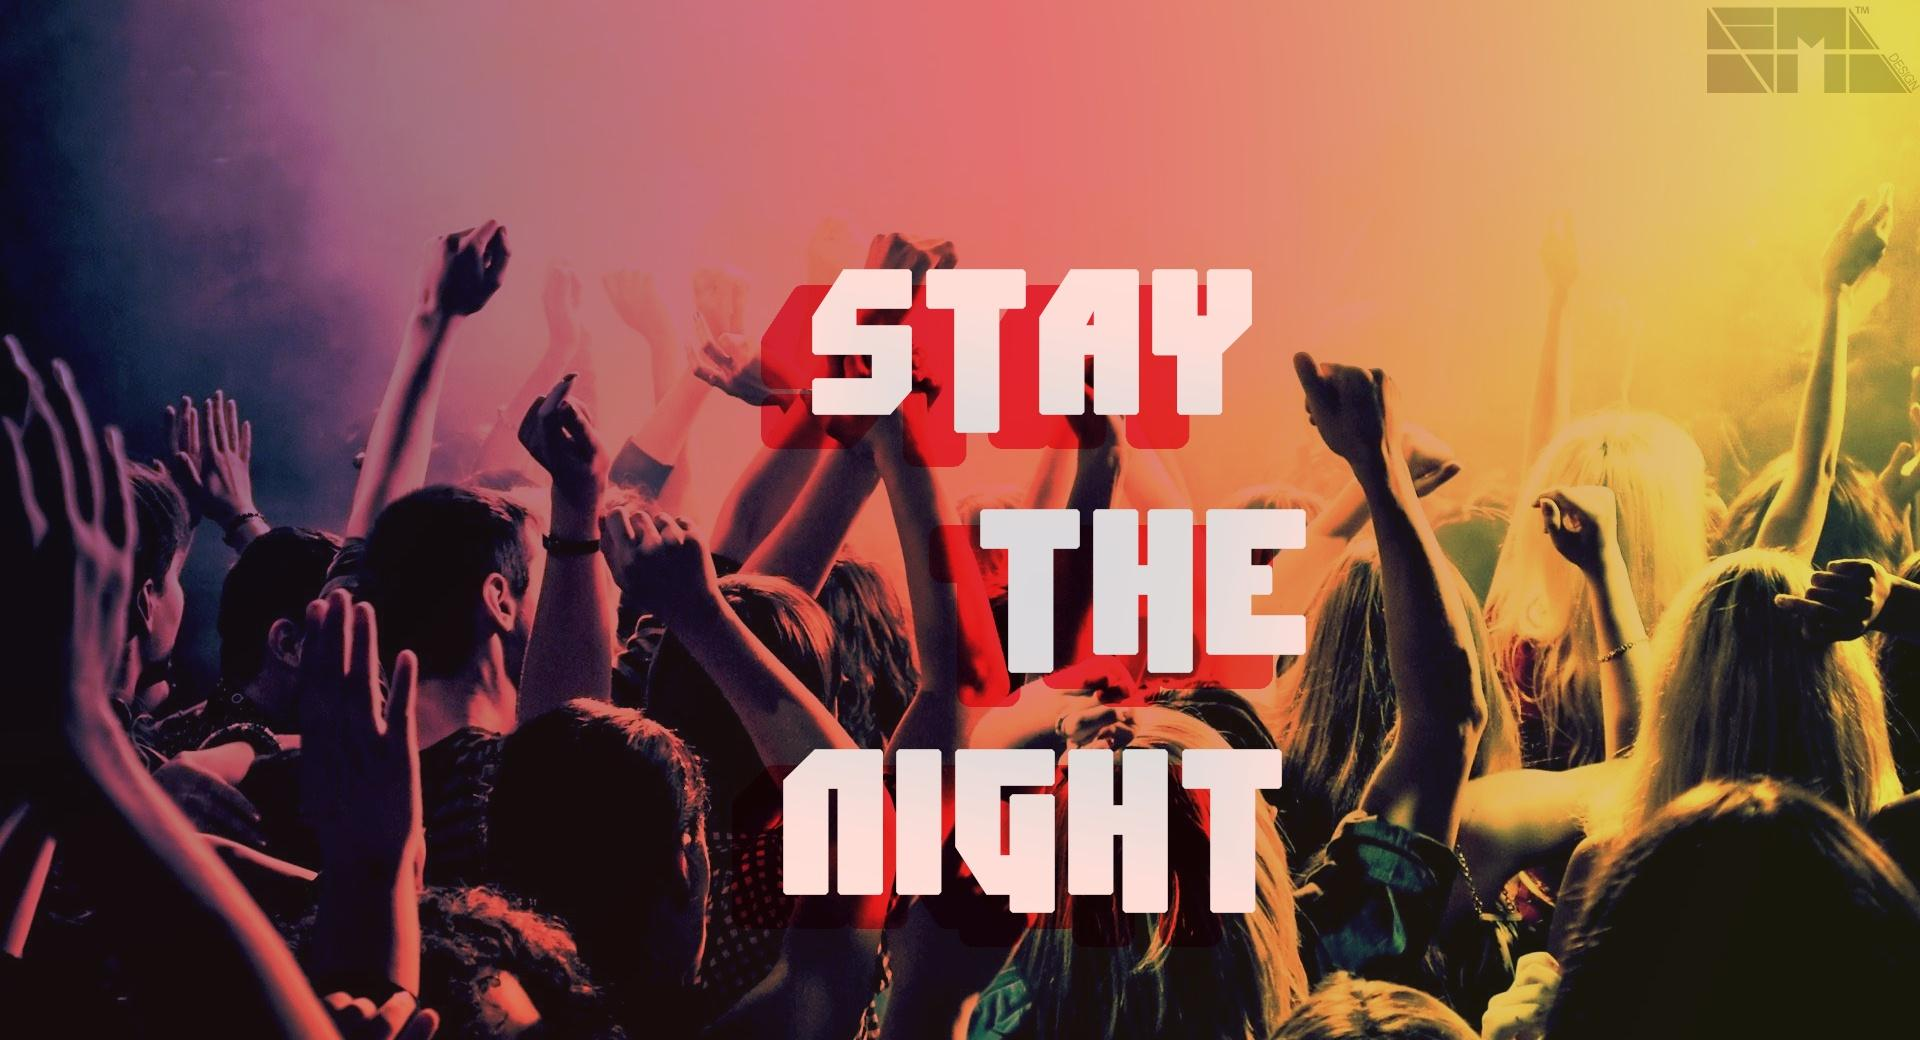 Stay The Night wallpapers HD quality